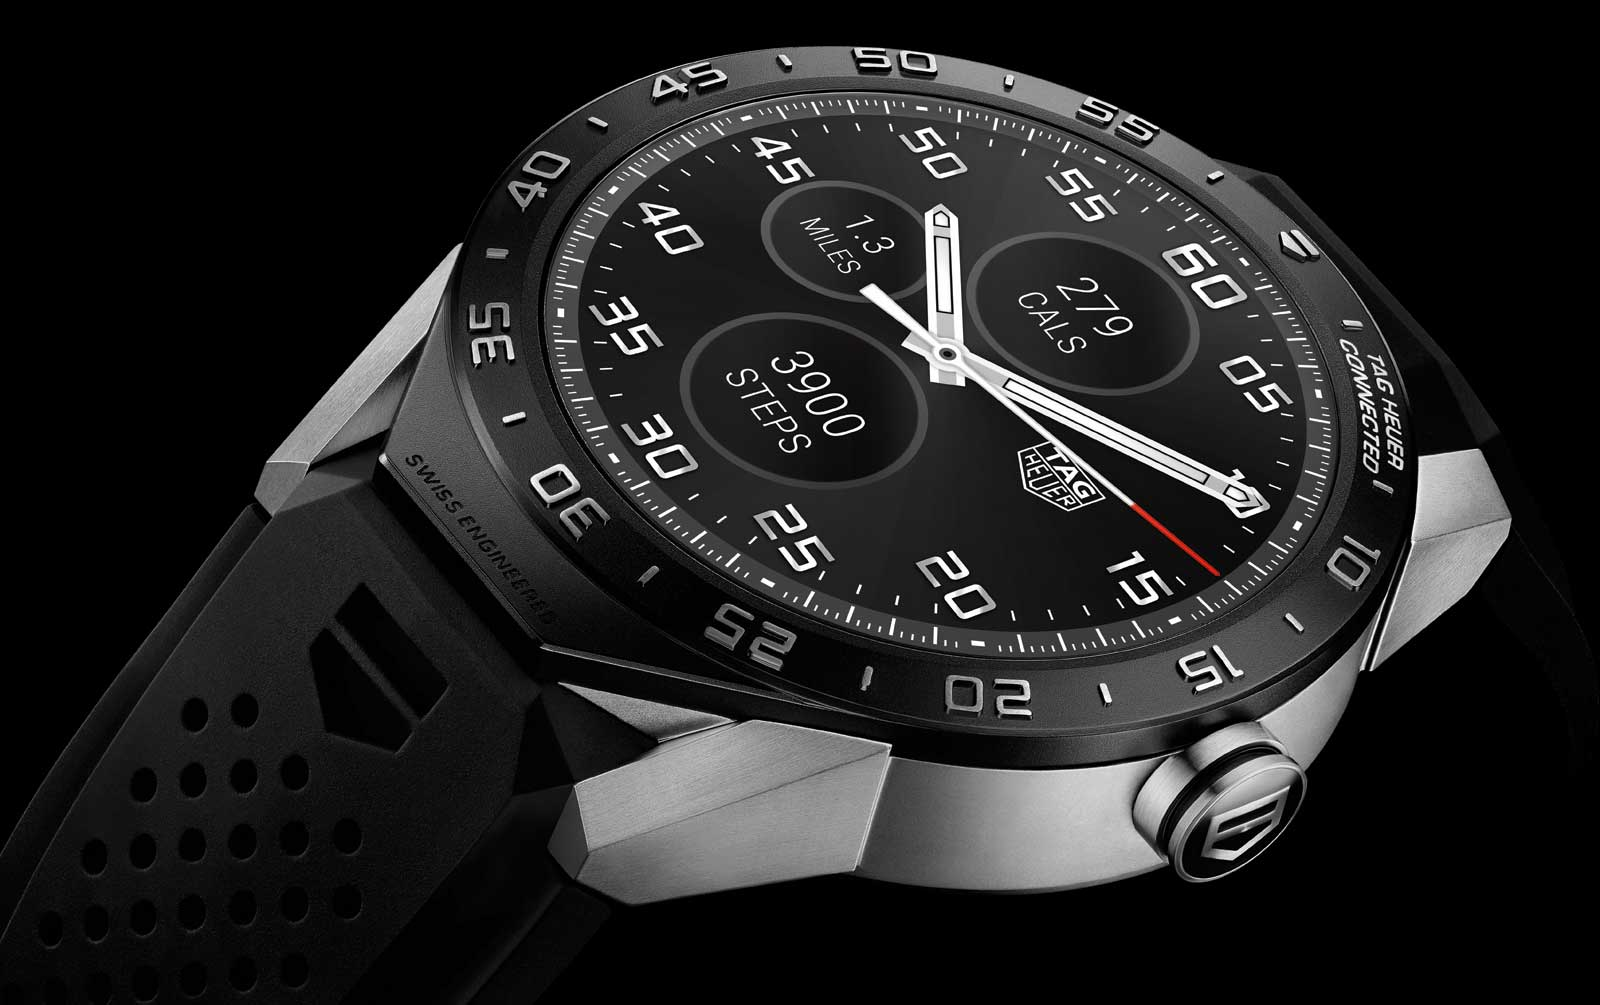 Tag Heuer Android Wear Carrera Connected